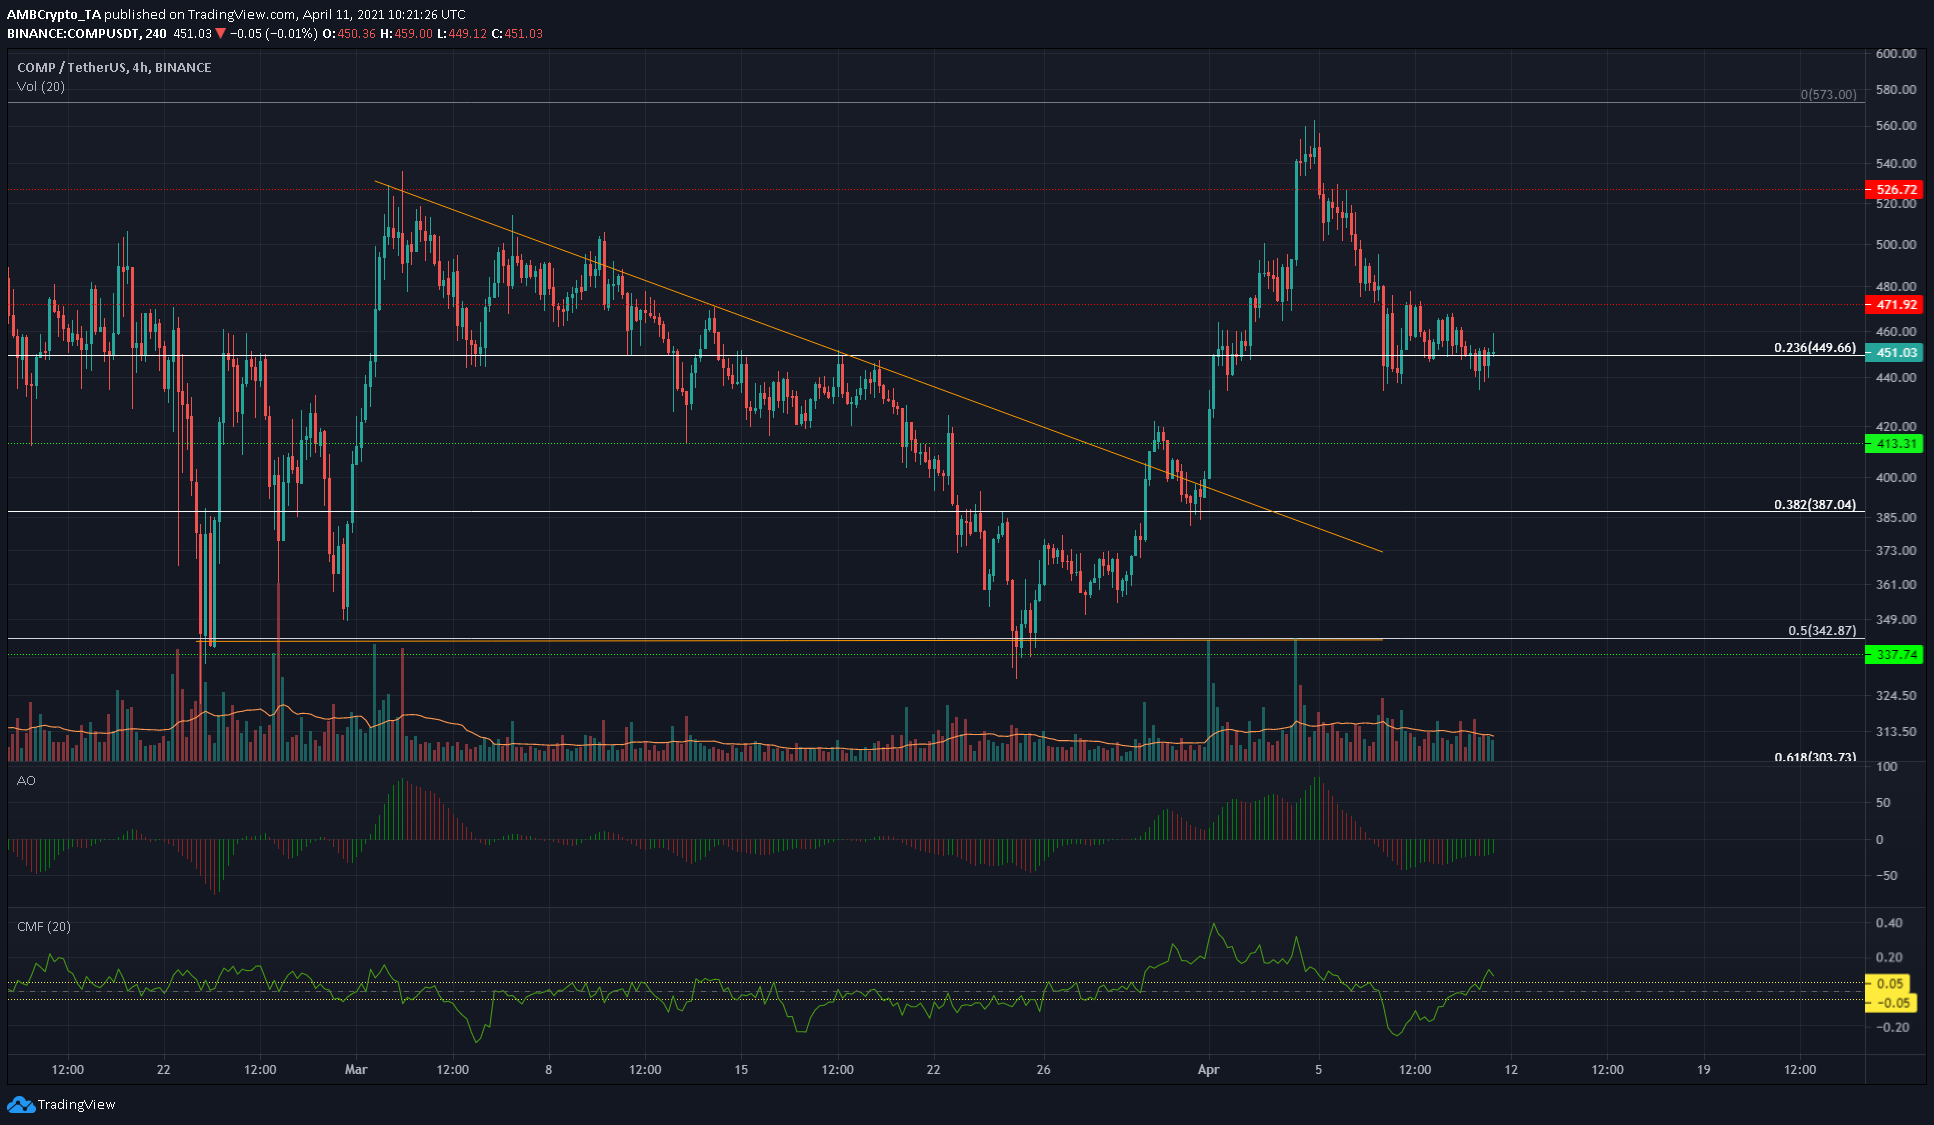 Cardano, Bitcoin SV, Compound Price Analysis: 11 April